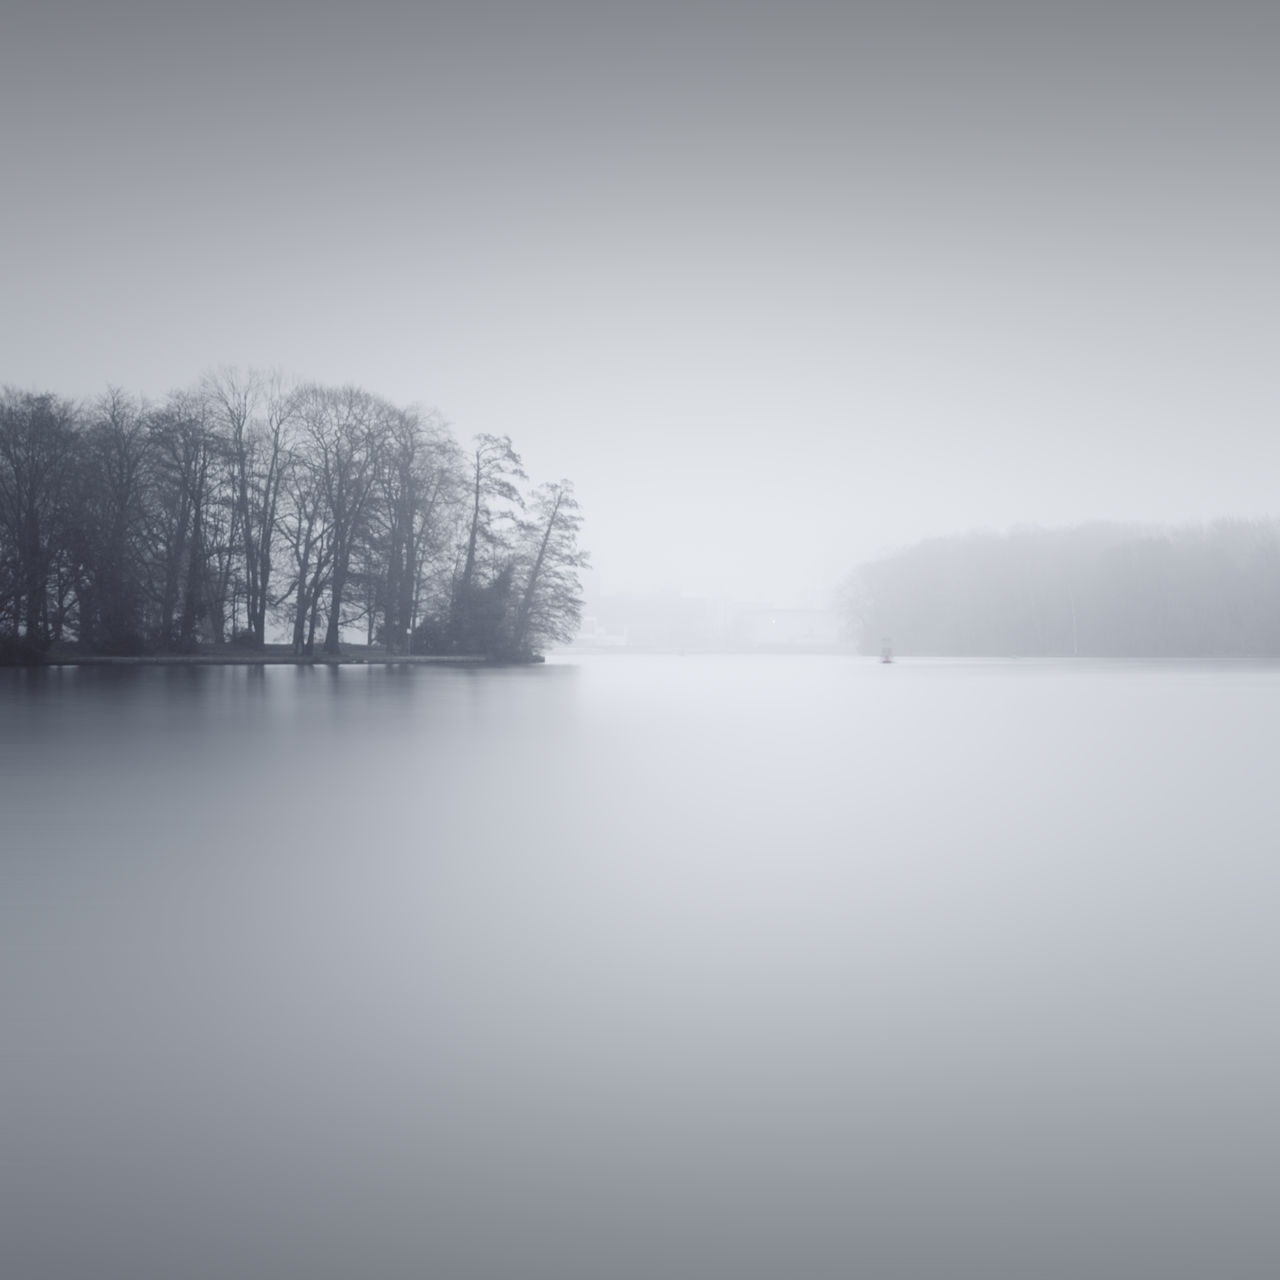 scenic view of lake against sky during winter Bare Tree Beauty In Nature Cold Temperature Day Fine Art Fog Lake Landscape Long Exposure Muted Colors Nature No People Outdoors Philipp Dase Reflection Scenics Sky Snow Tranquil Scene Tranquility Tree Water Weather Winter